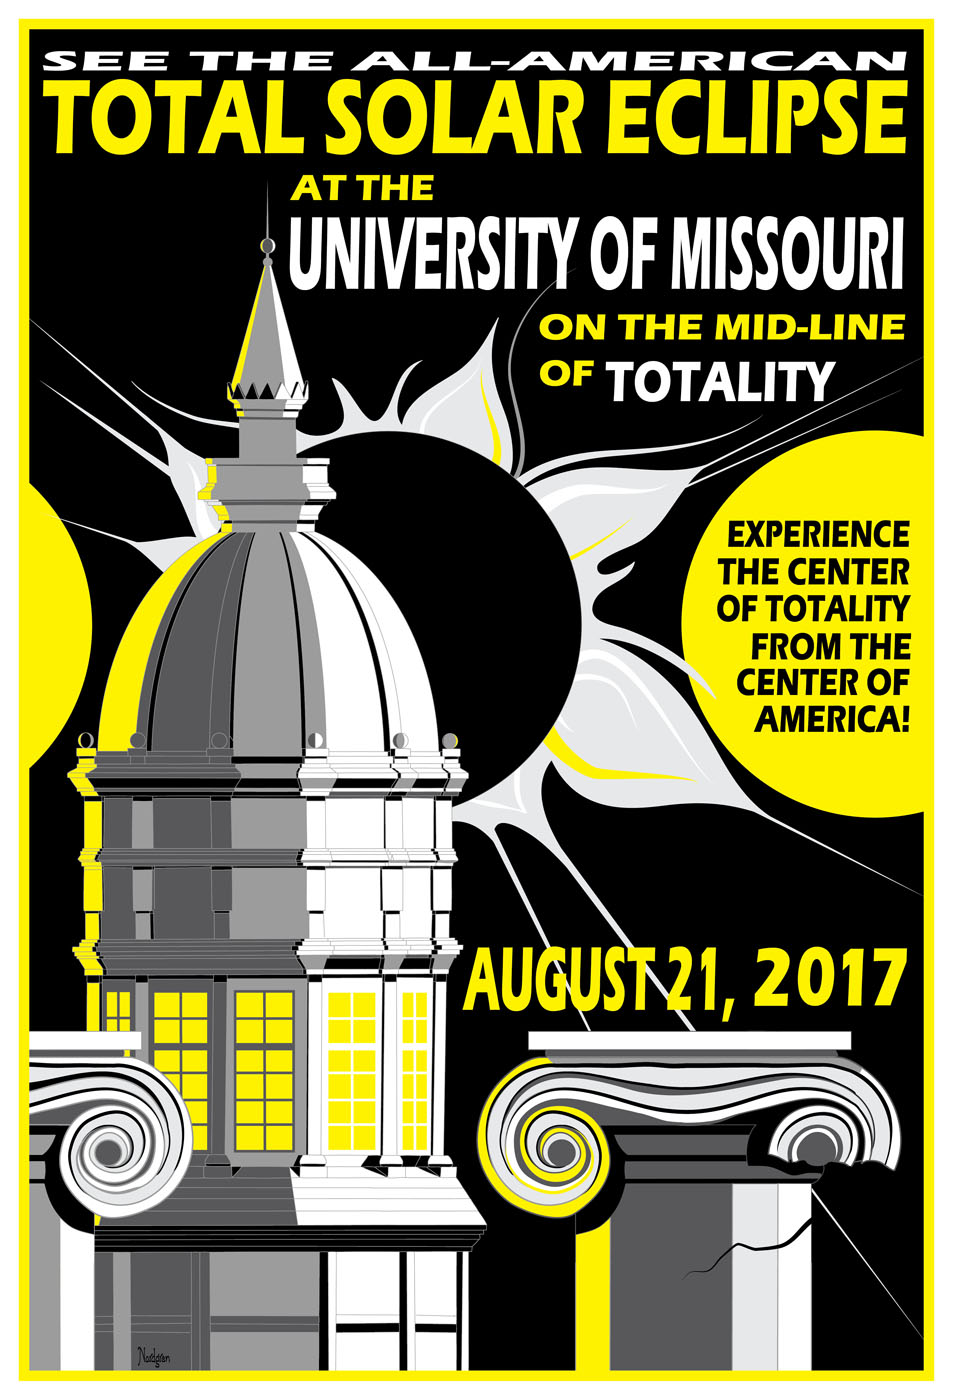 Tyler Nordren has made a suite of beautiful posters, including this Mizzou one, celebrating the 2017 solar eclipse across America! Get yours  here !